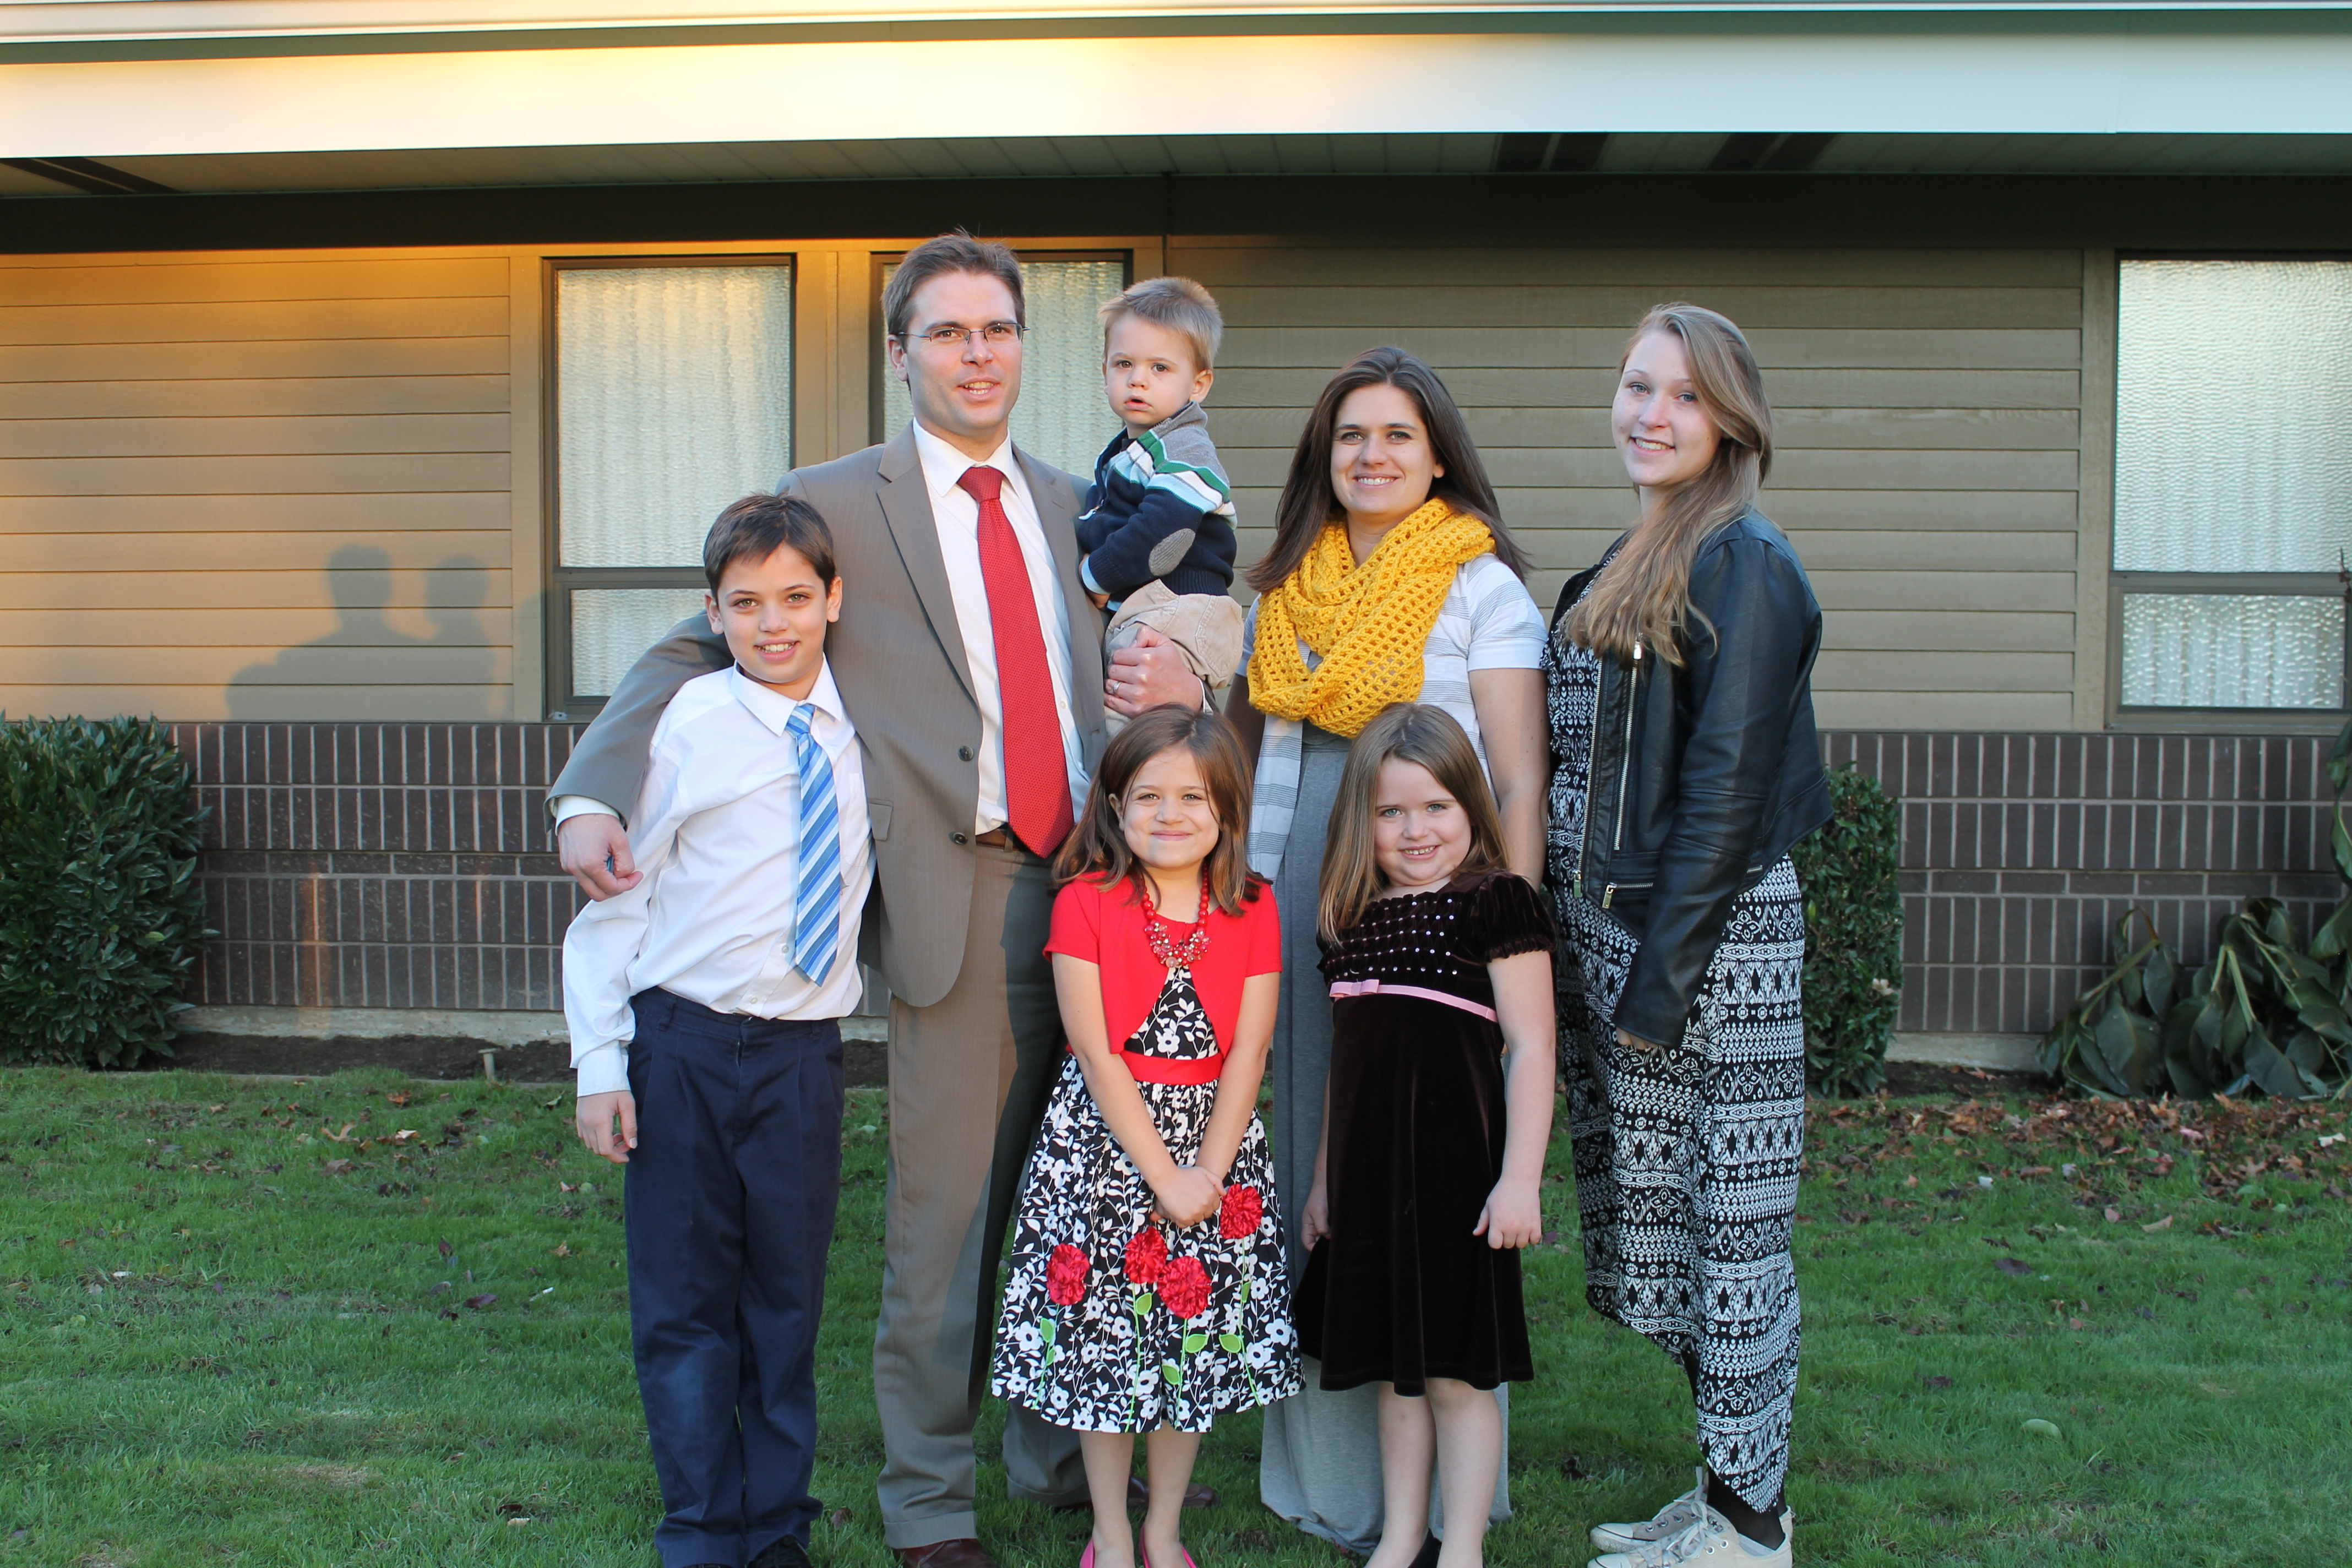 children helping others lds - photo #9